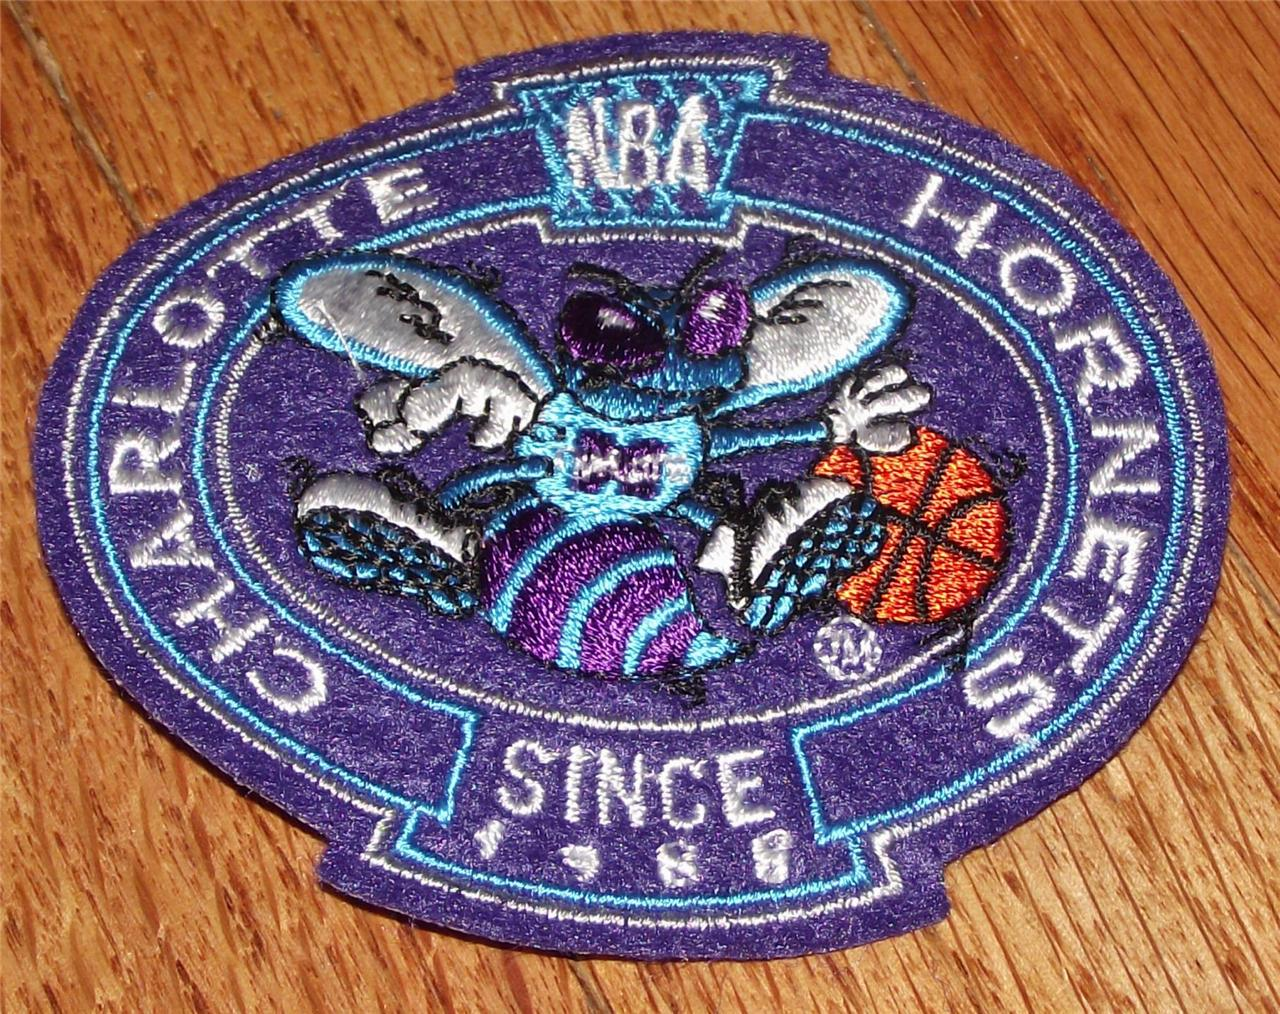 New charlotte hornets crest logo polo sized embroidered